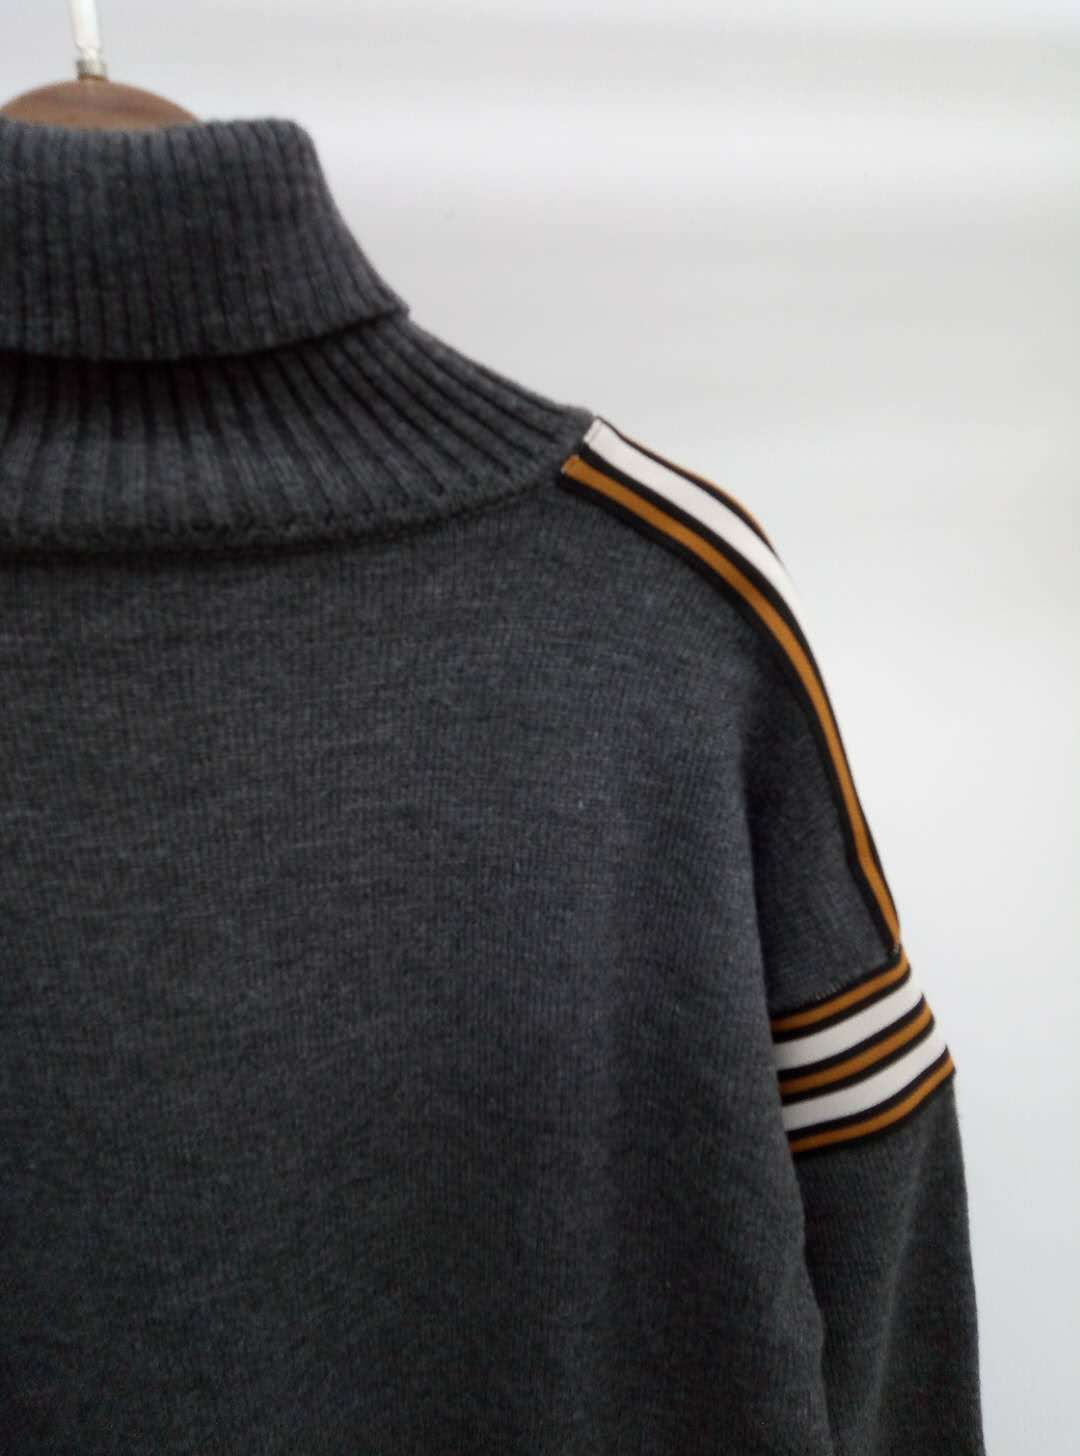 France autumn/winter 2021/high neck stitching striped knitted top pullover casual fashion top enlarge